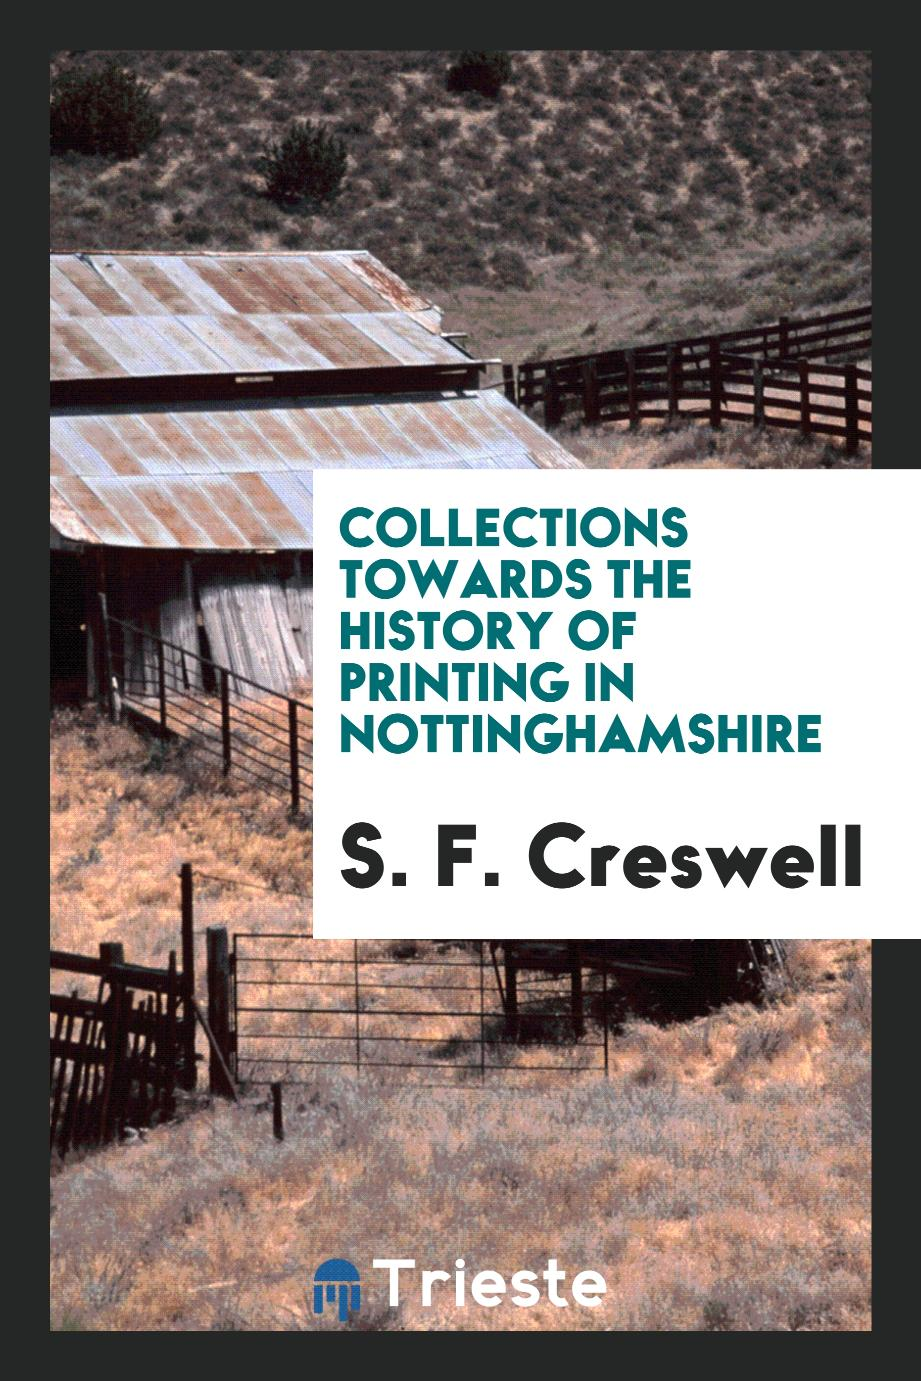 Collections towards the history of printing in Nottinghamshire